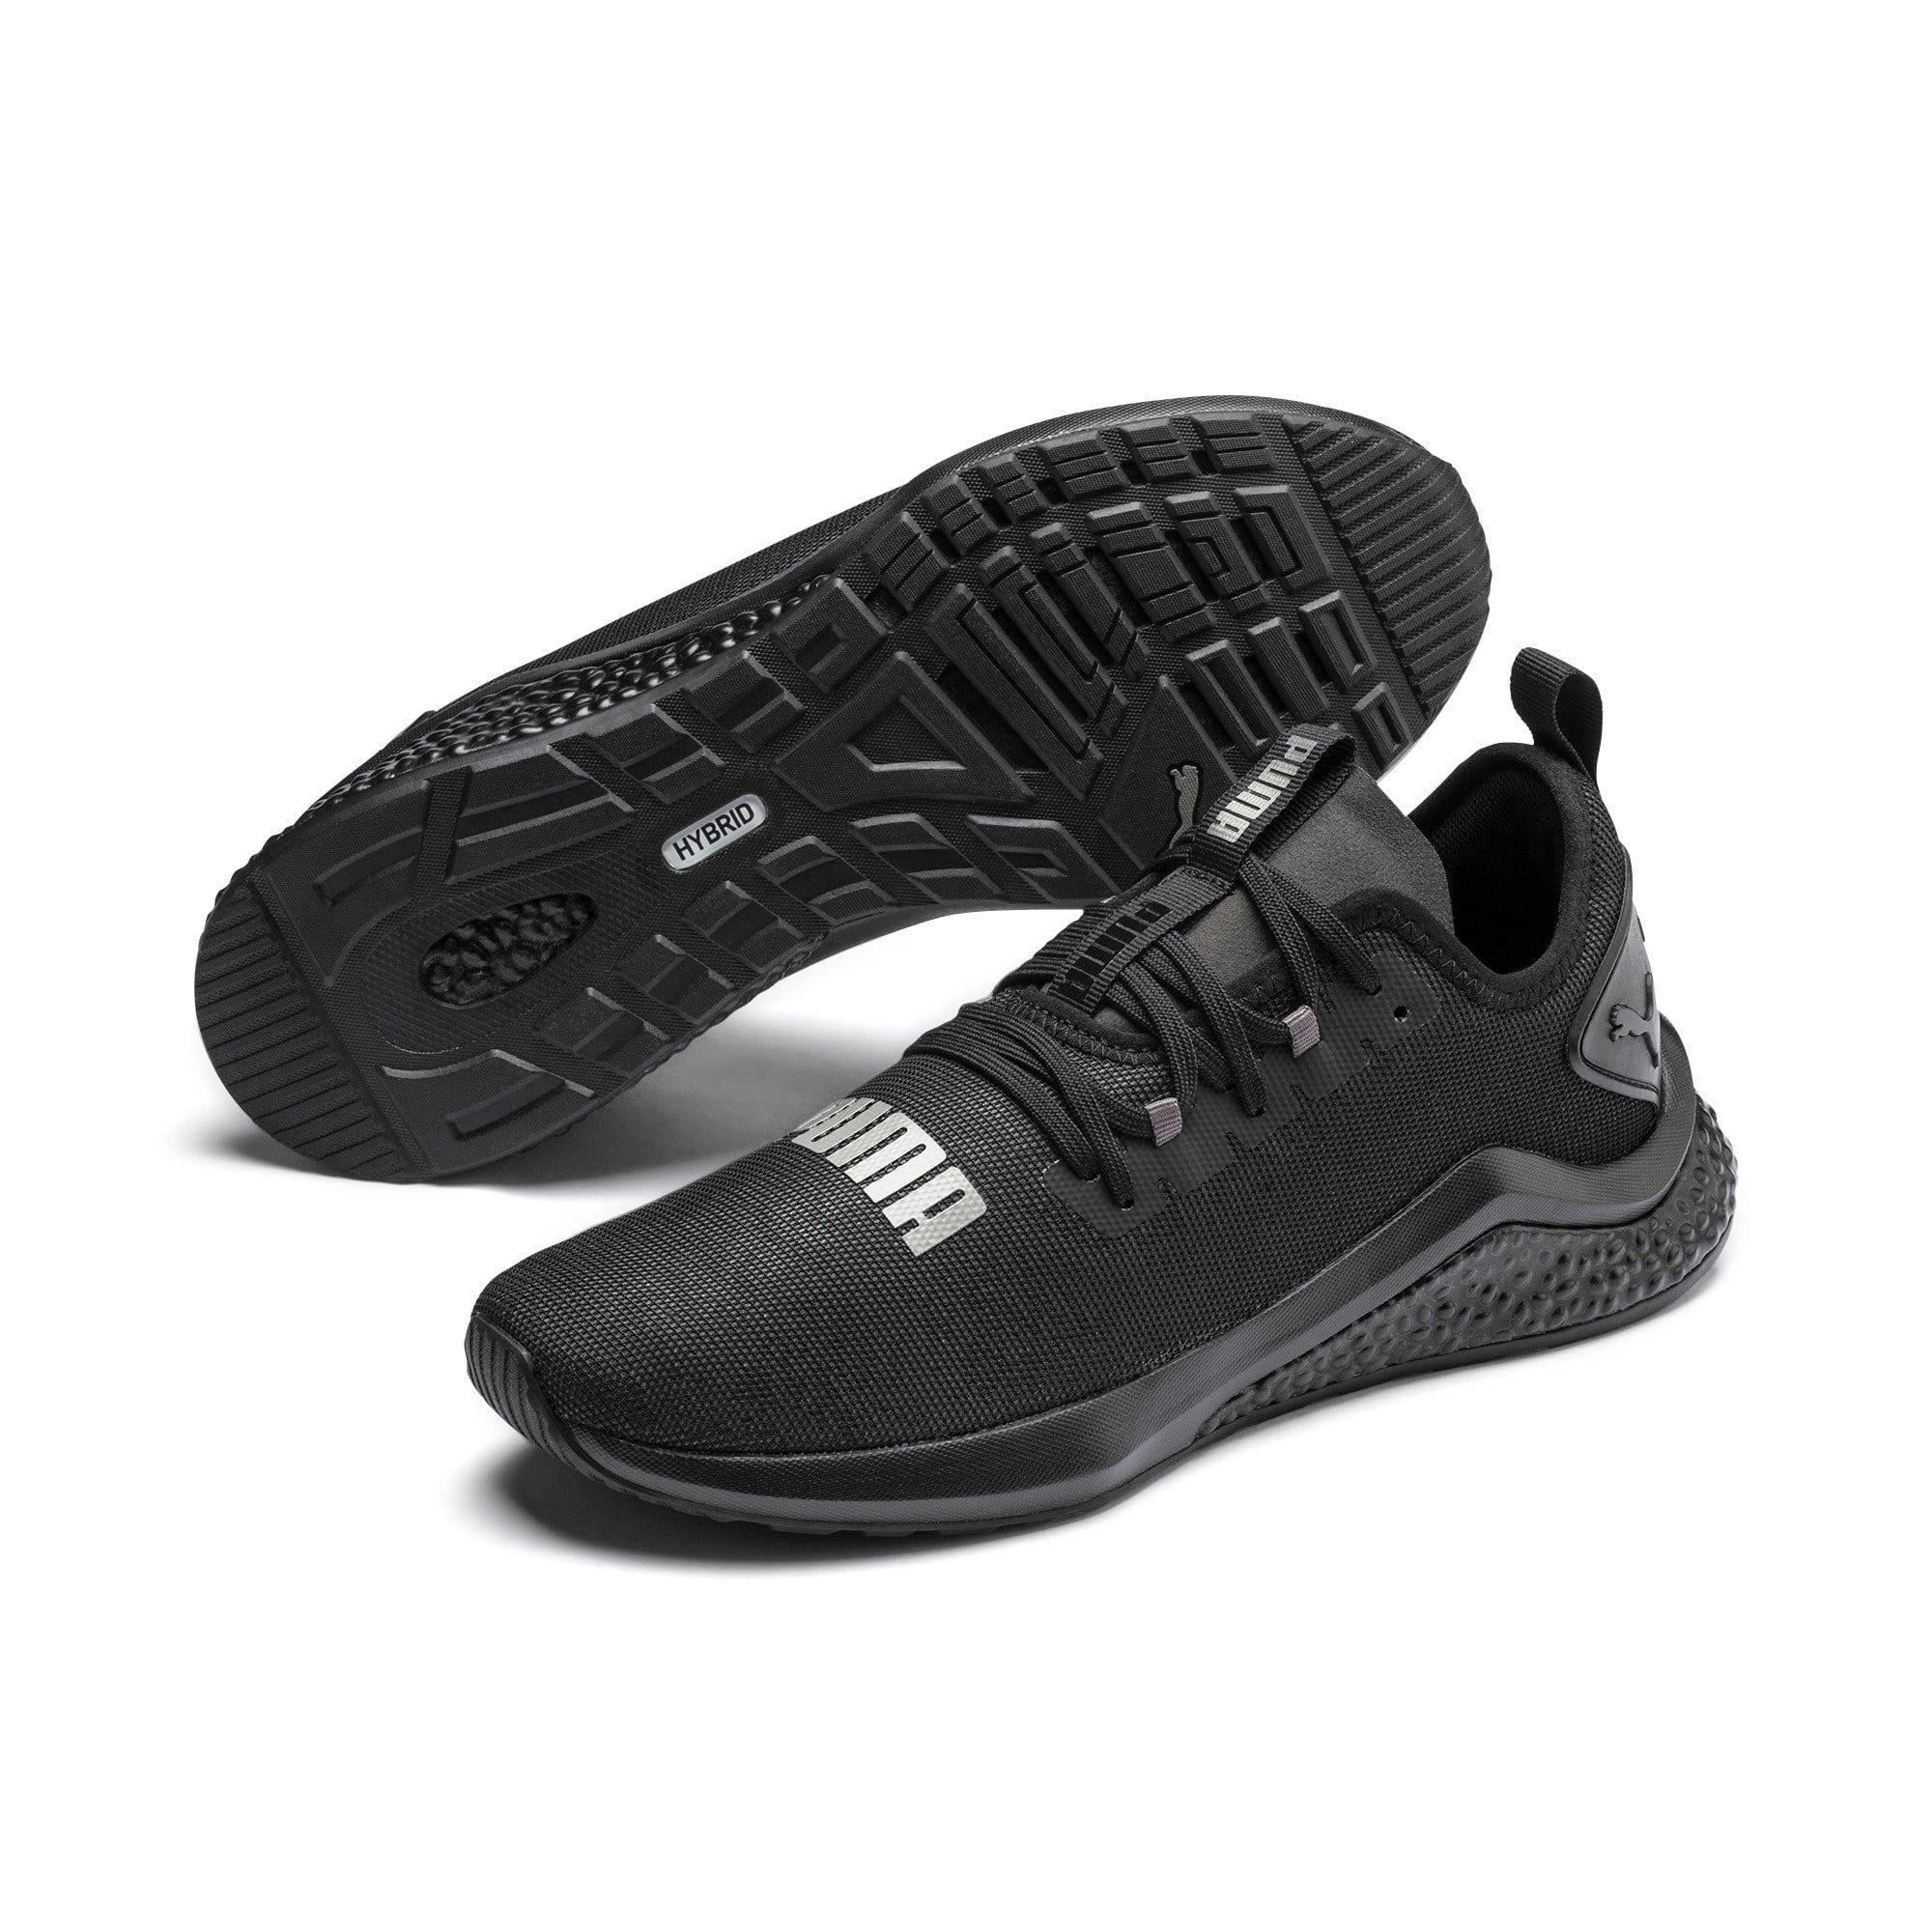 PUMA Hybrid Nx Rave Men's Running Shoes in Black size 10.5